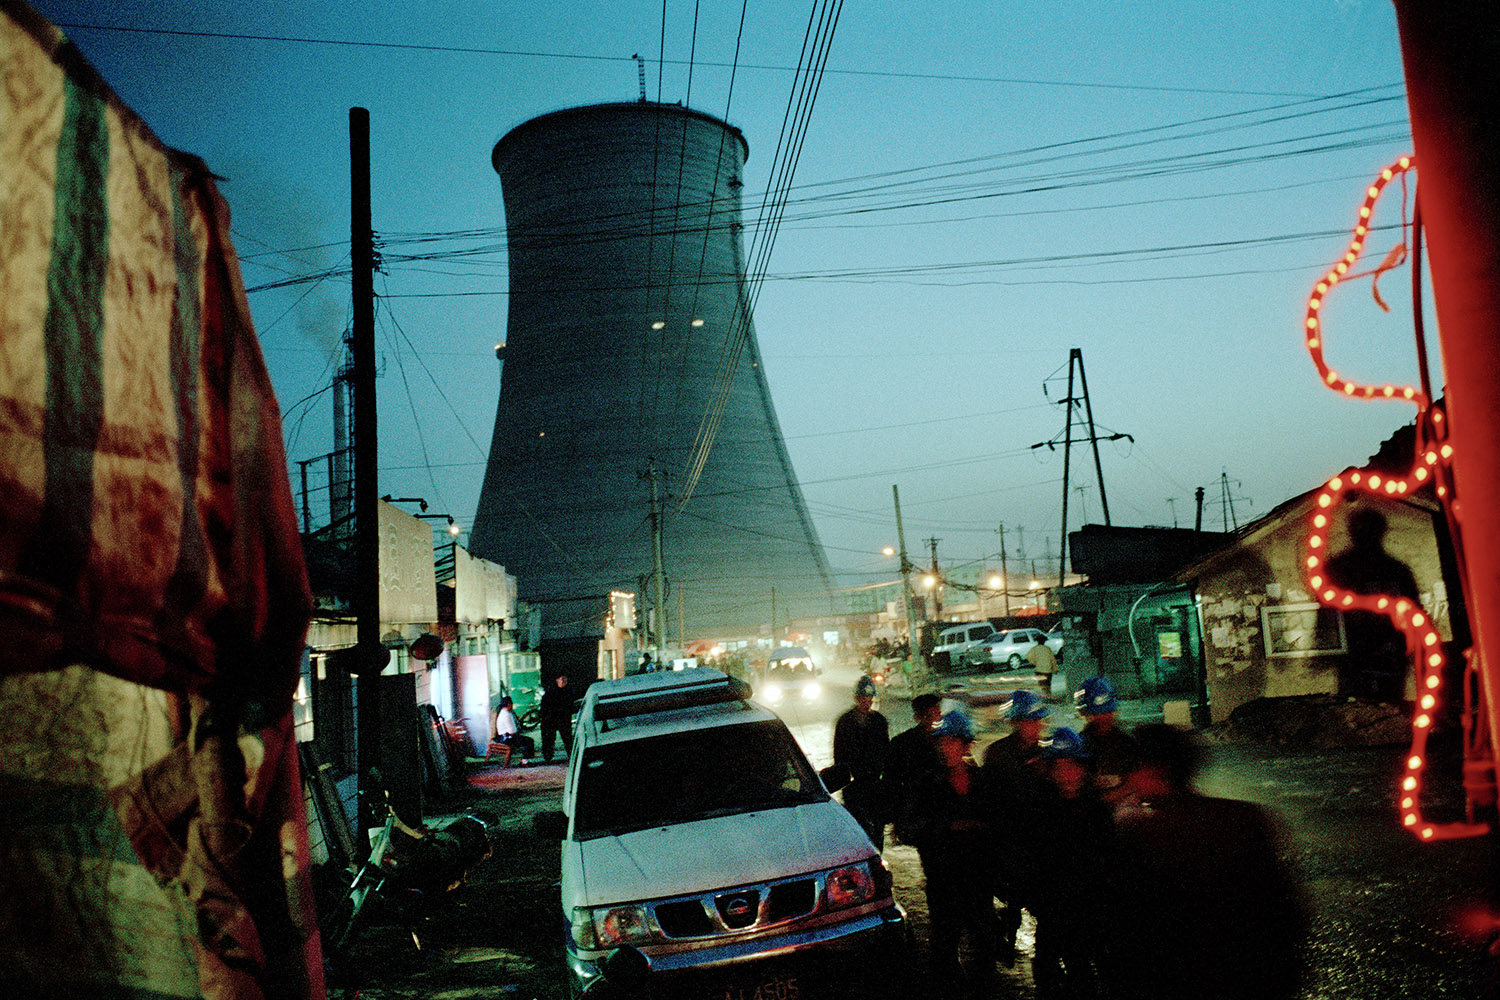 Workers return home after a days work at a nearby coal power station and steel plant. Behind in the distance is a new cooling tower that has just been erected, the station is increasing its capacity. Tonghua, China.